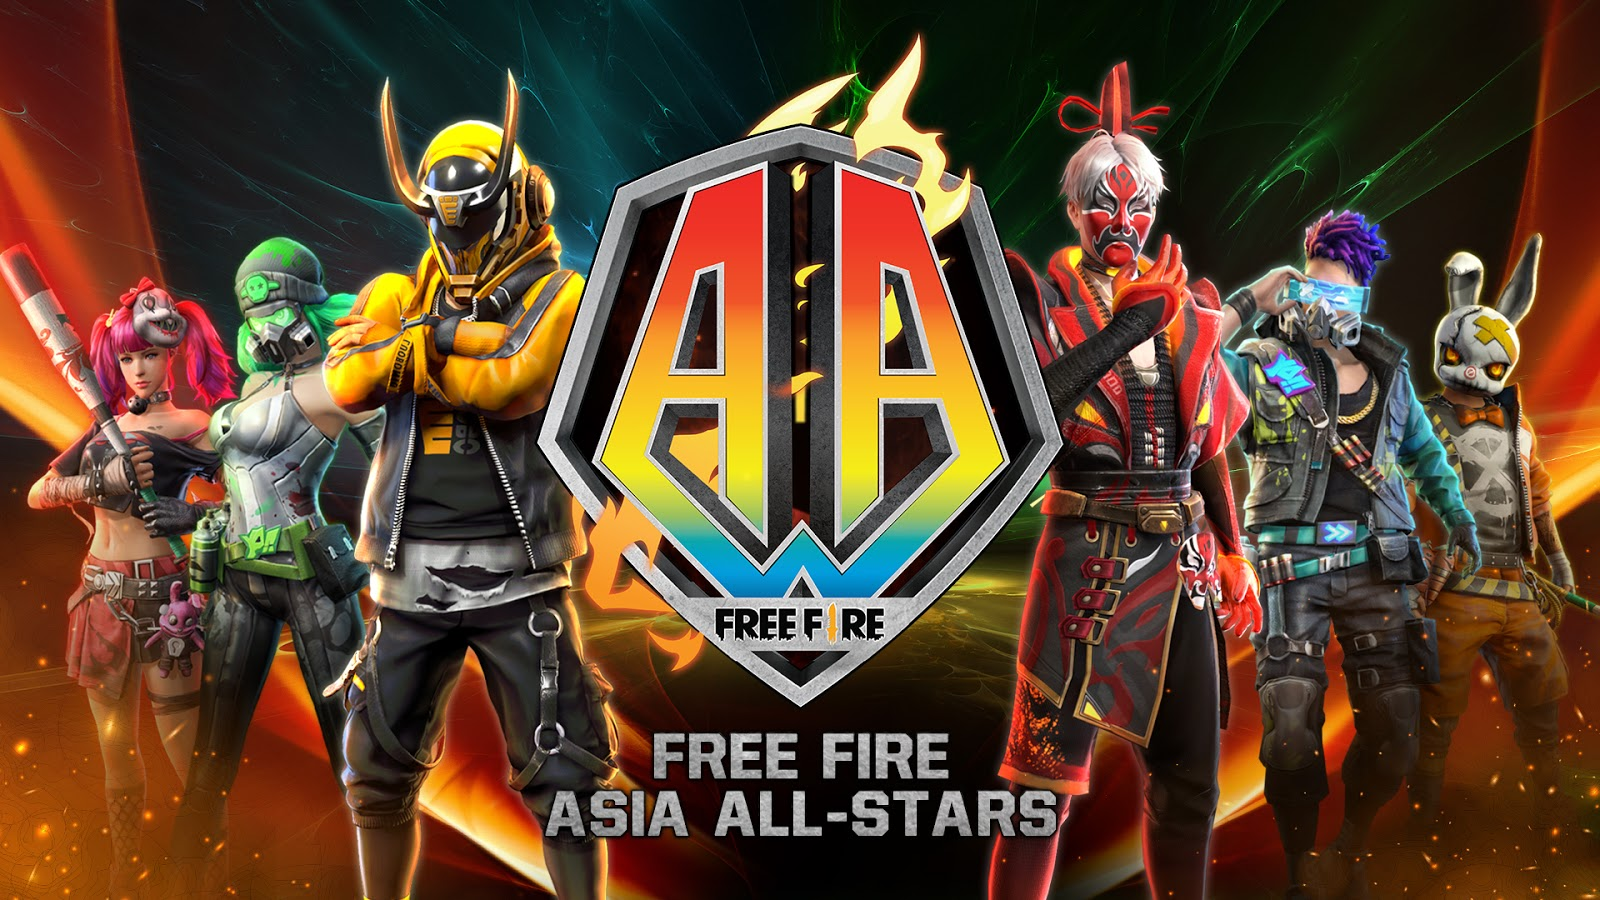 Garena to host Free Fire Asia All-Stars 2020 with $80,000 prize pool